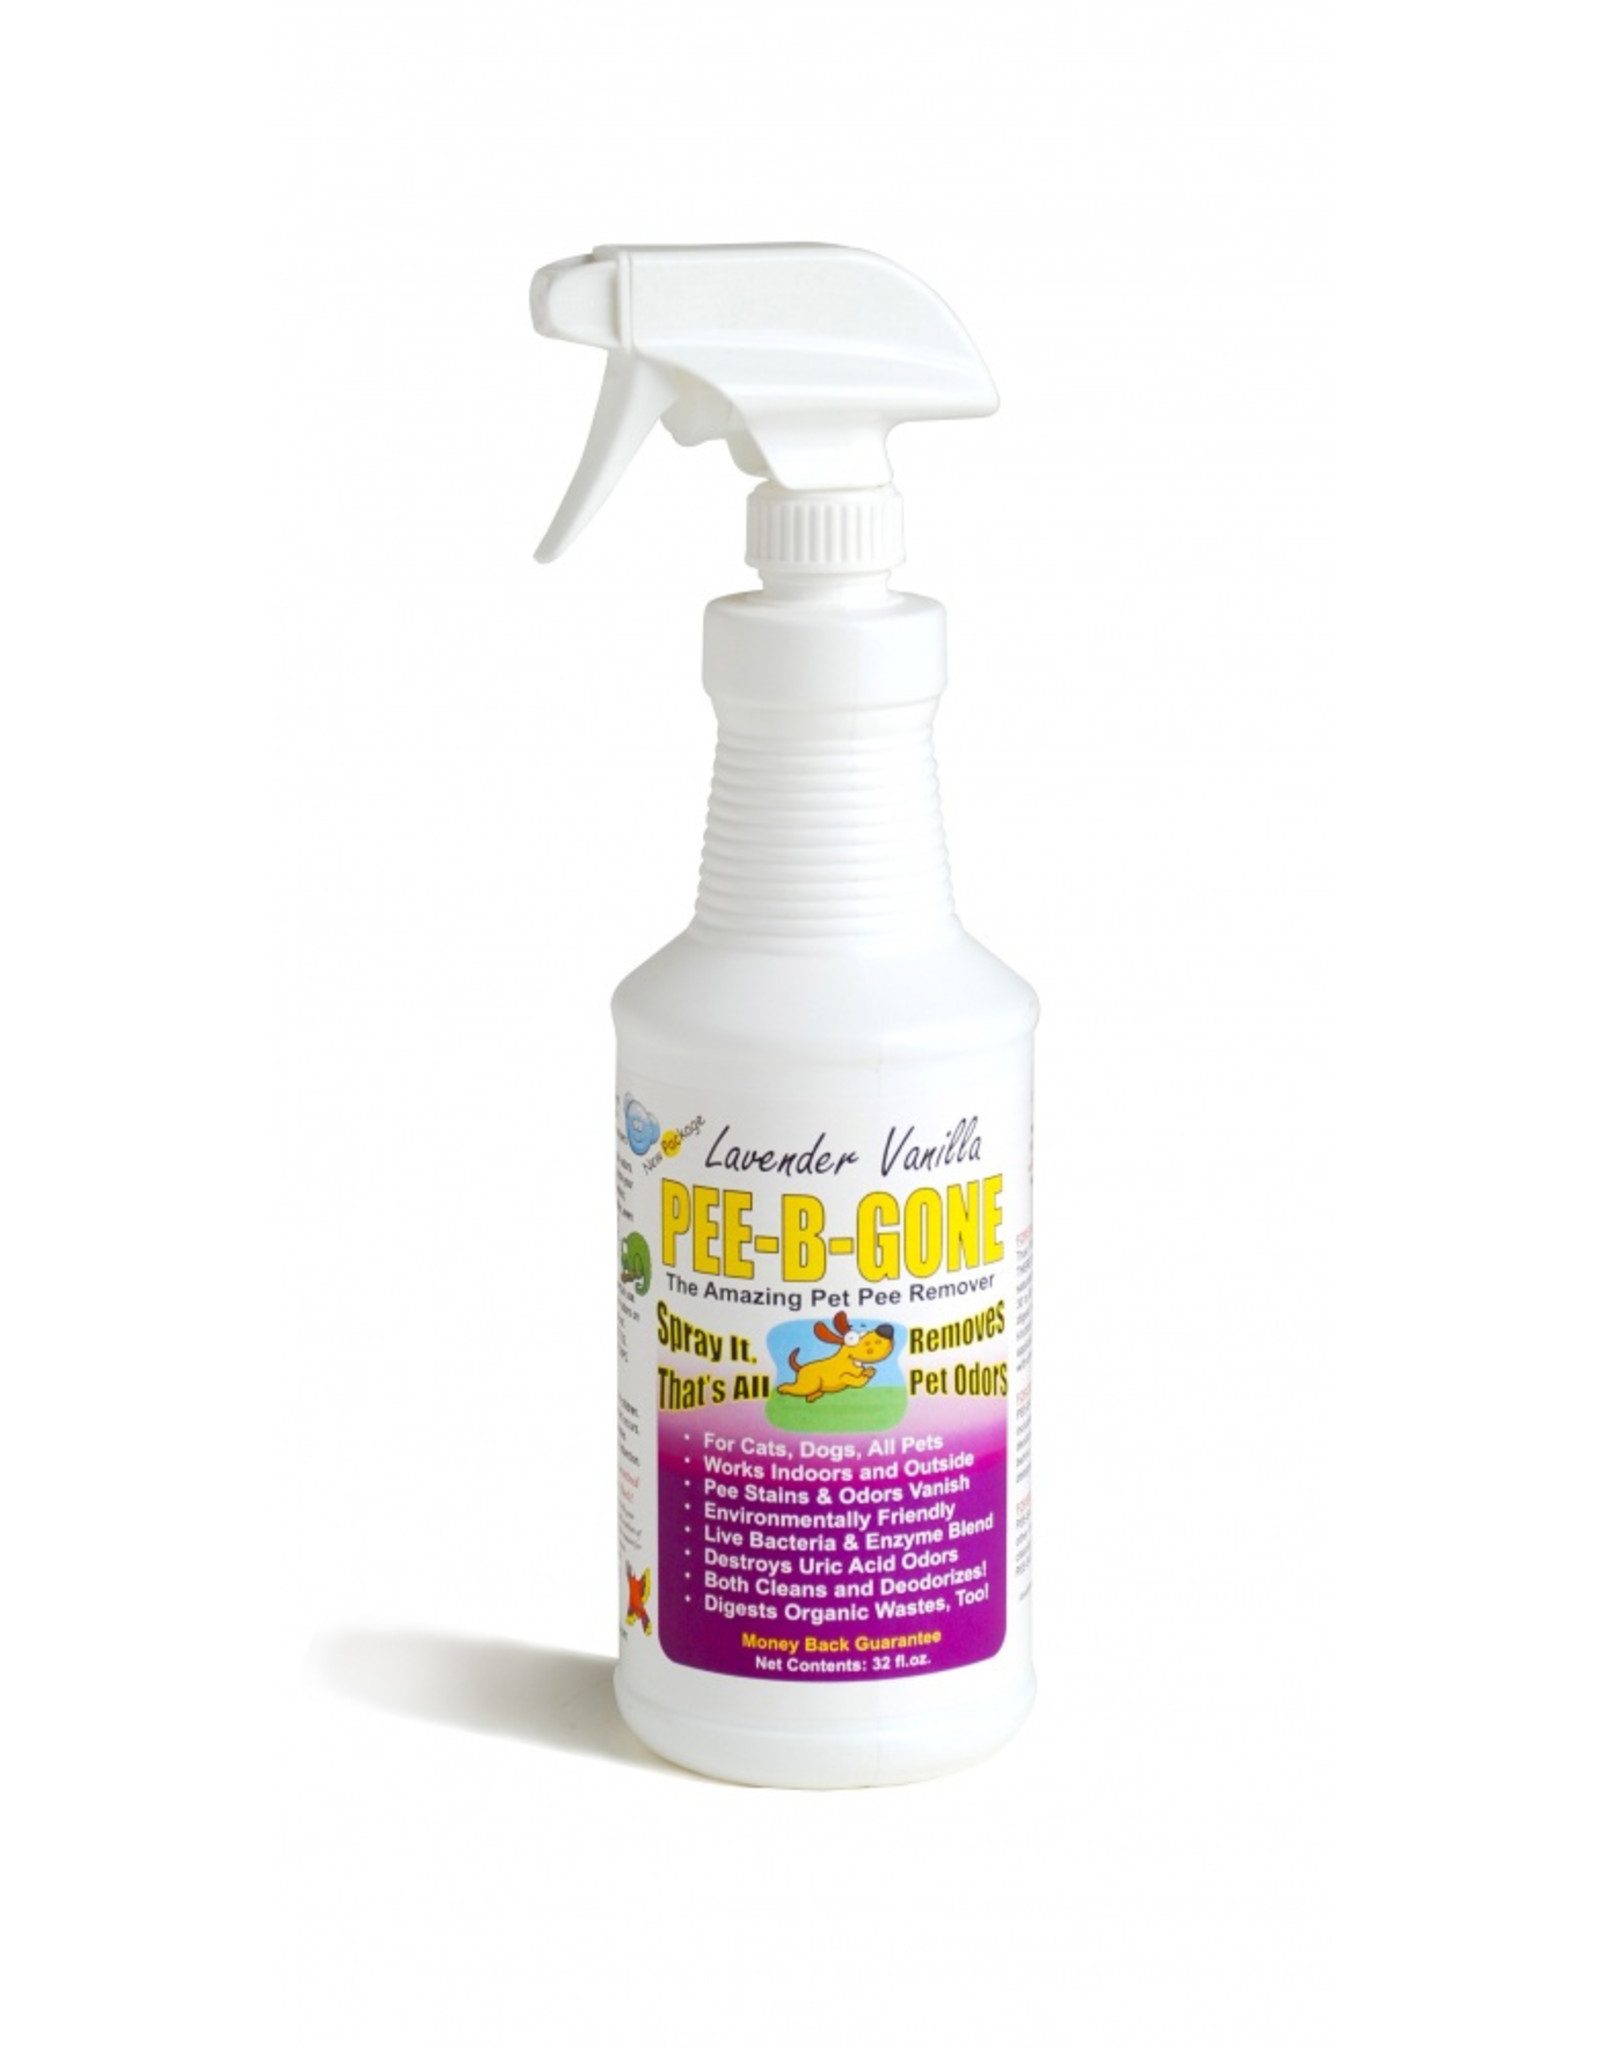 Pee-B-Gone Alzoo Pee-B-Gone Lavender Vanilla Scent Pet Stain & Odor Remover - 32 oz Spray, 1 Gal